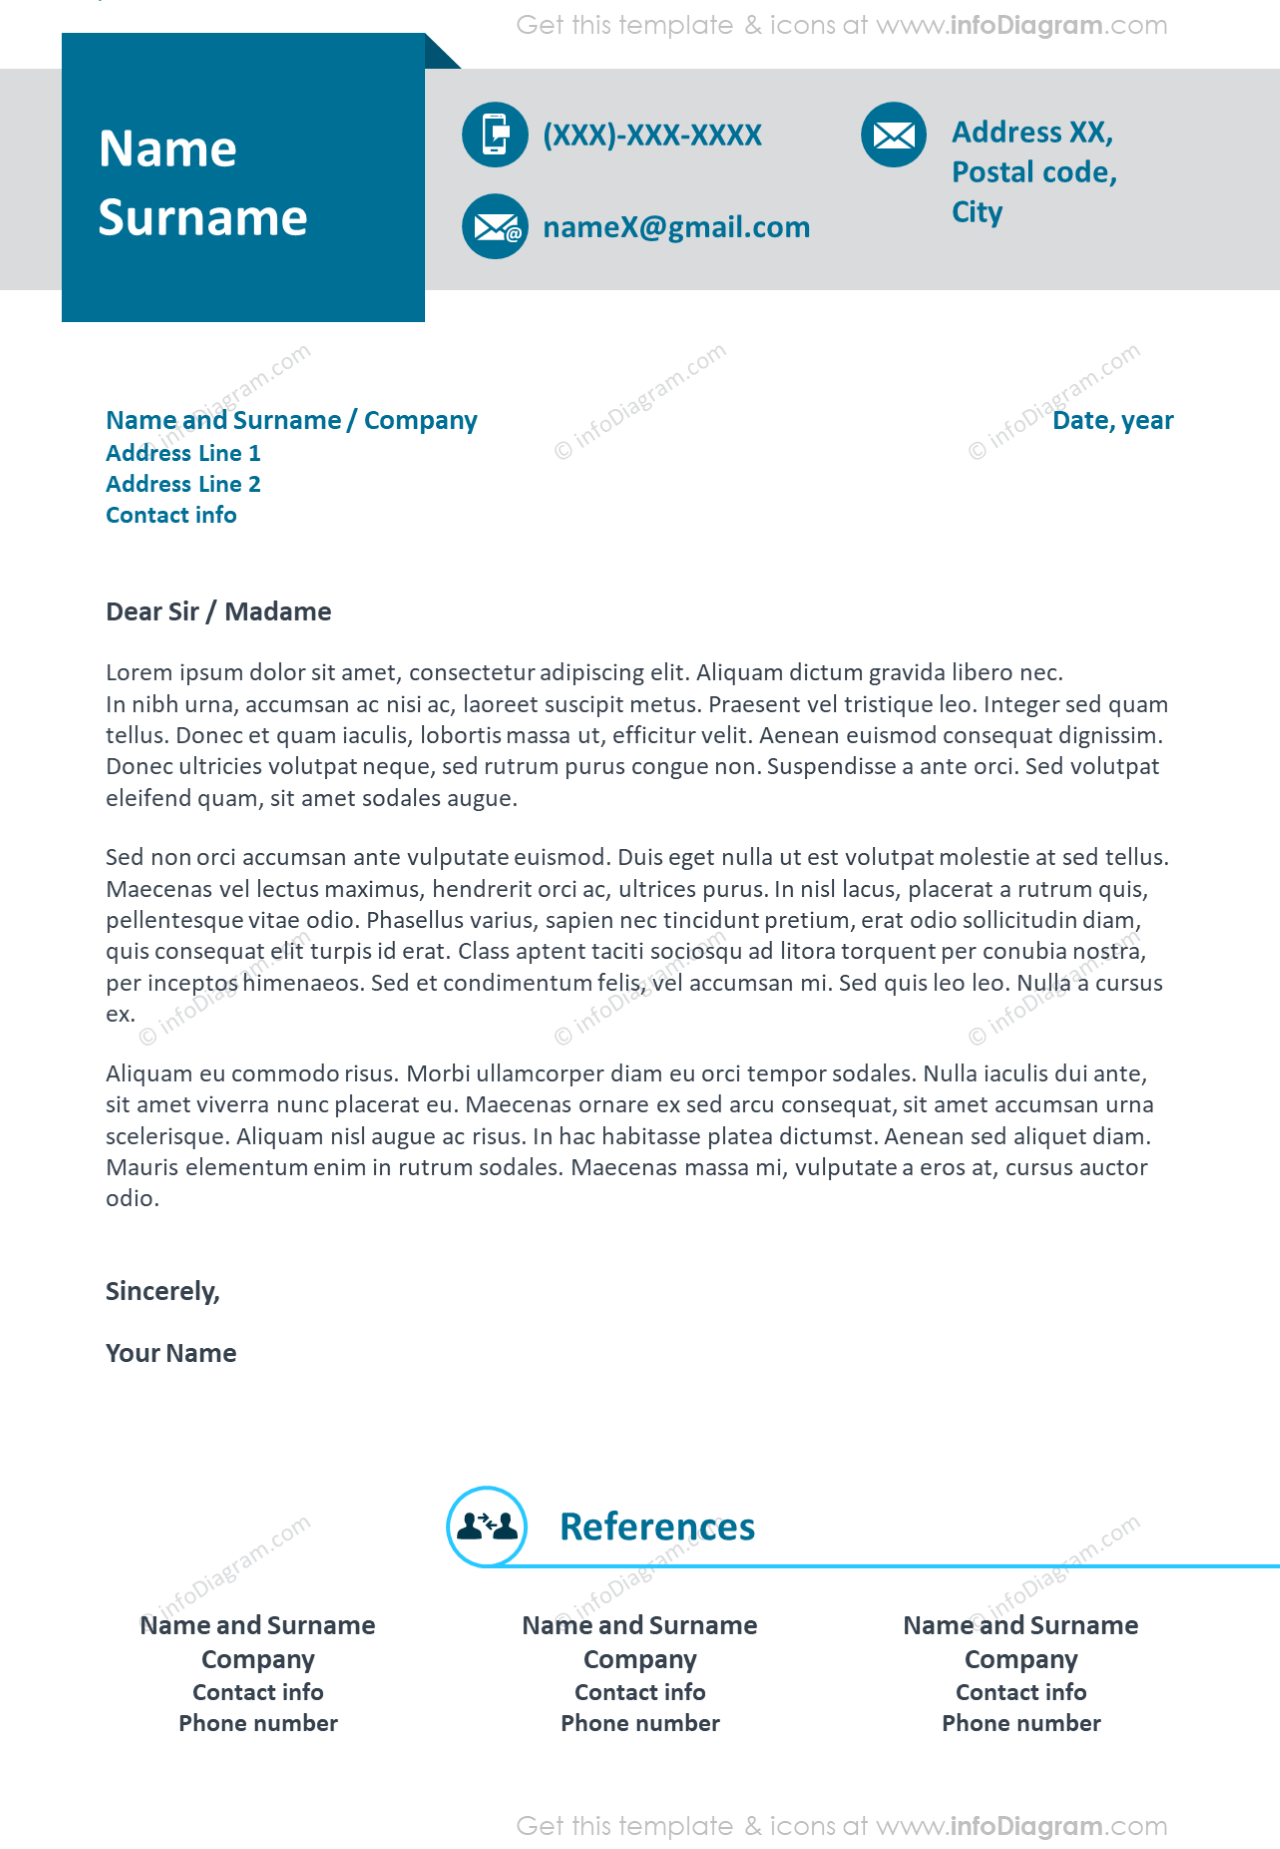 Professional blue ribbon visual motivation letter and references example